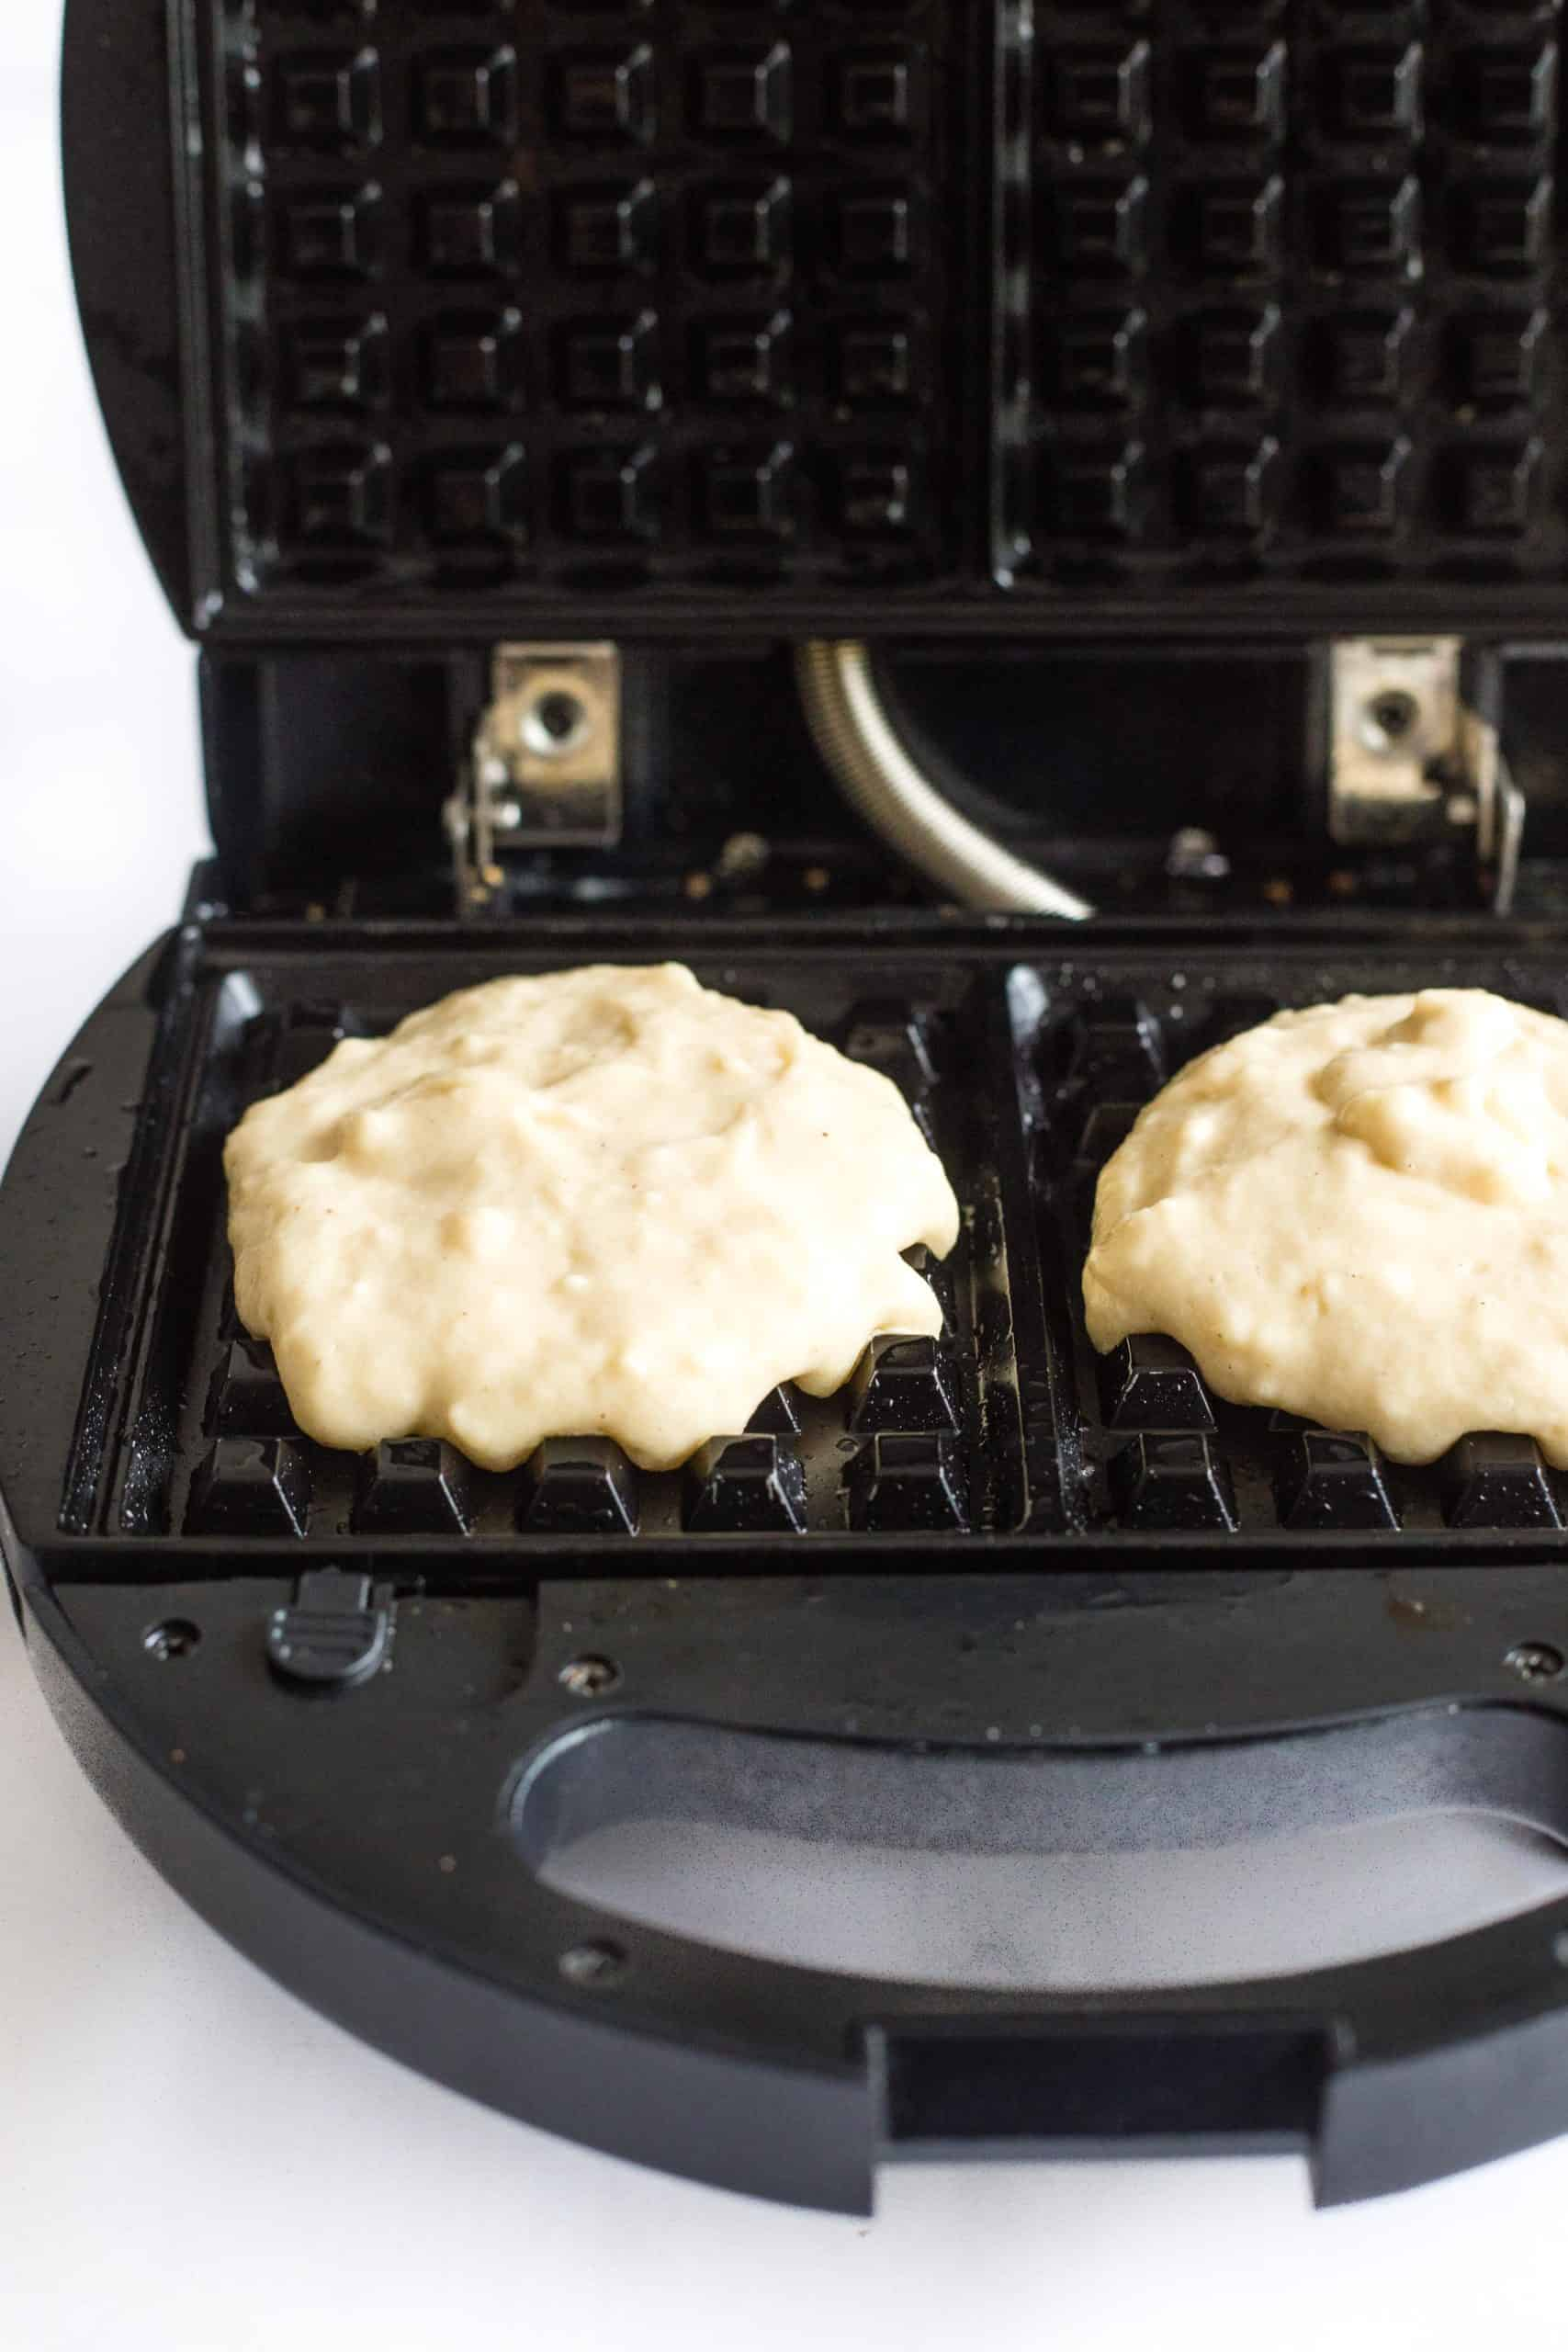 Waffle batter poured onto the waffle iron and ready to be cooked.